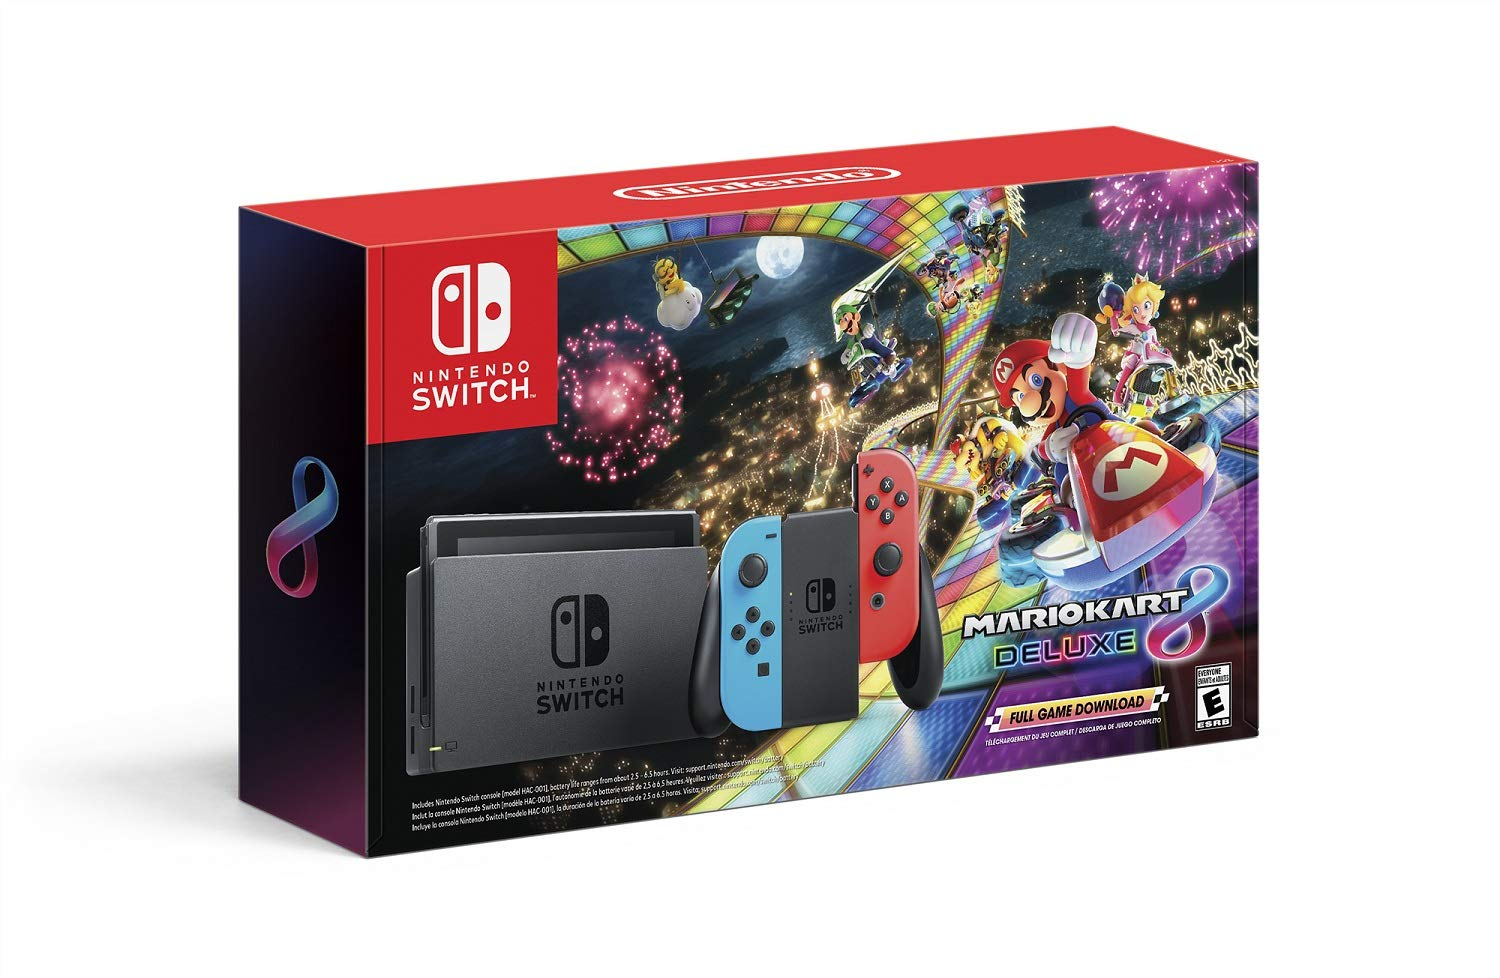 Nintendo Switch w Challenge the lowest price Neon Blue Red 8 + D Joy-Con Kart Mario Max 62% OFF